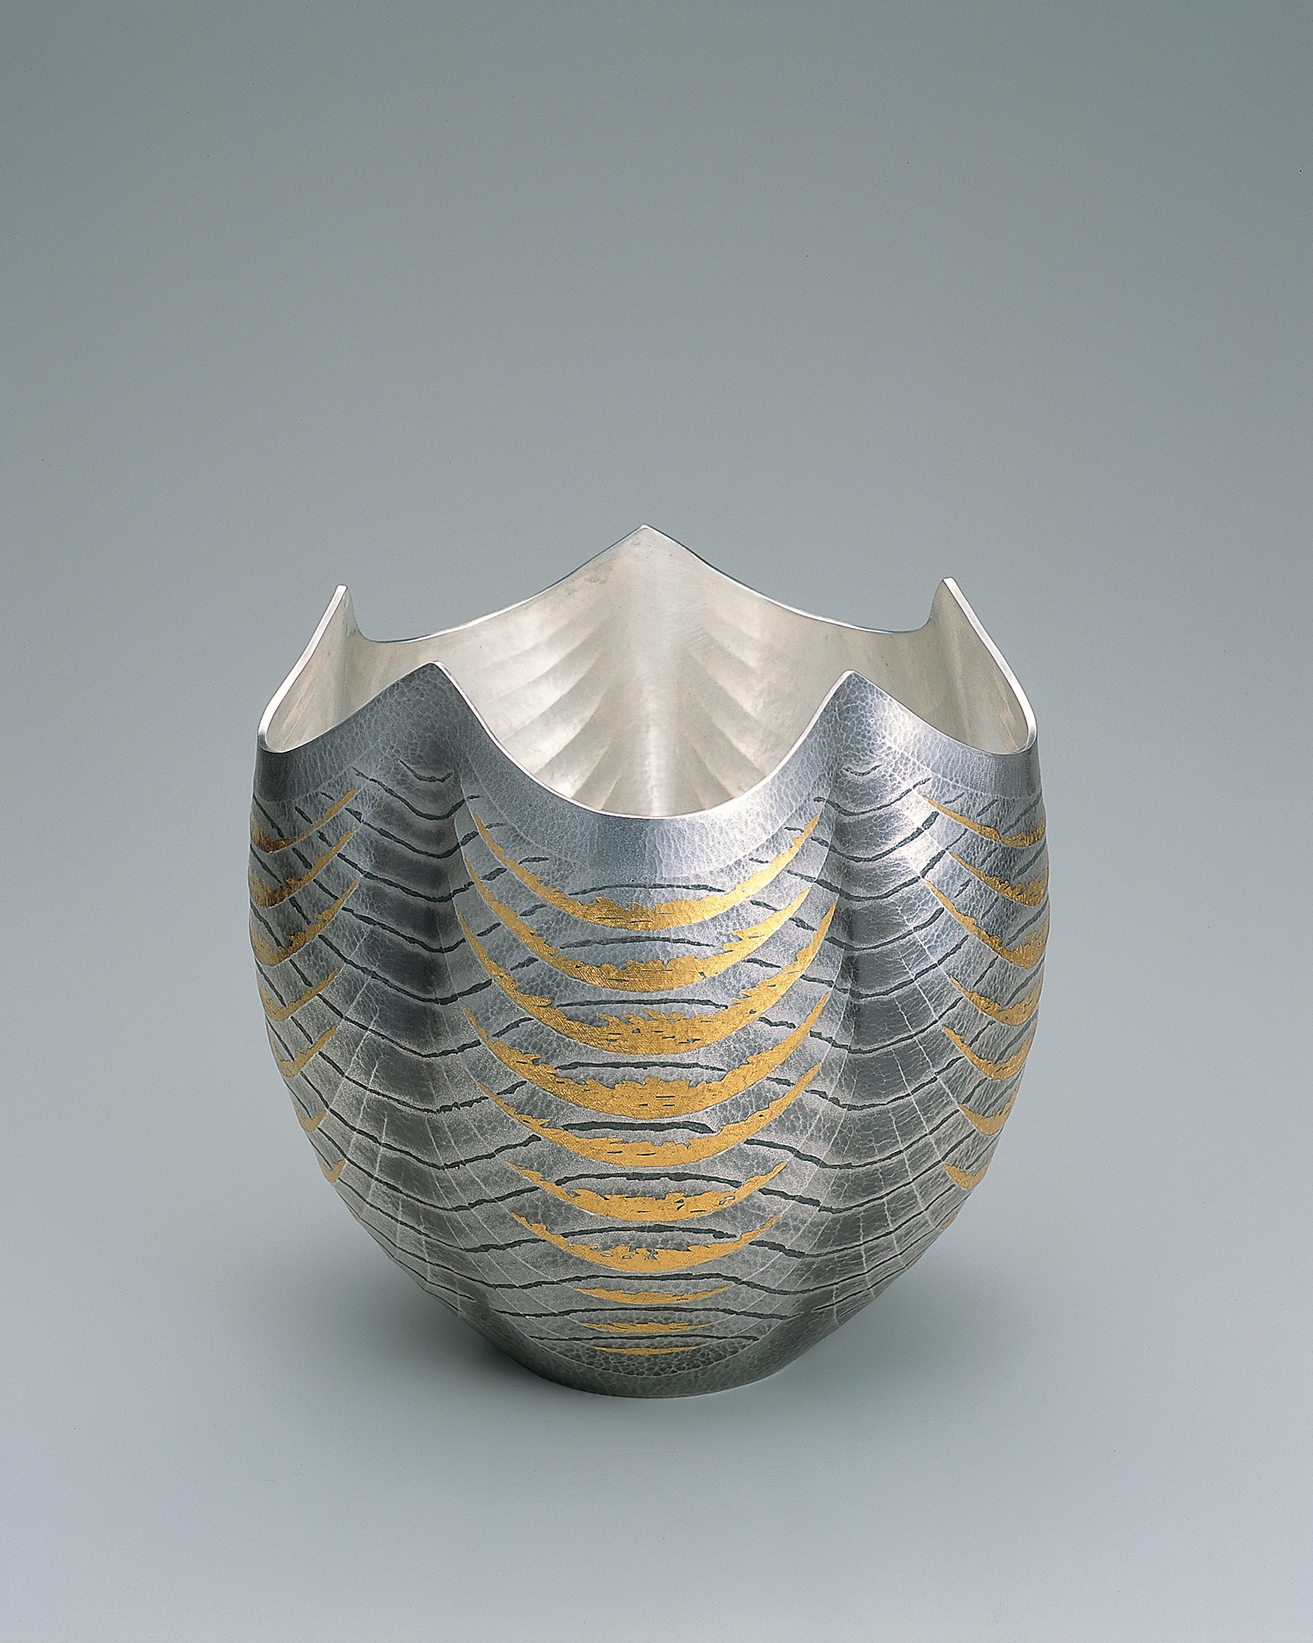 Onishi Gallery, 'Heritage: Contemporary Japanese Ceramics and Metalwork' at Asia Week New York 2015